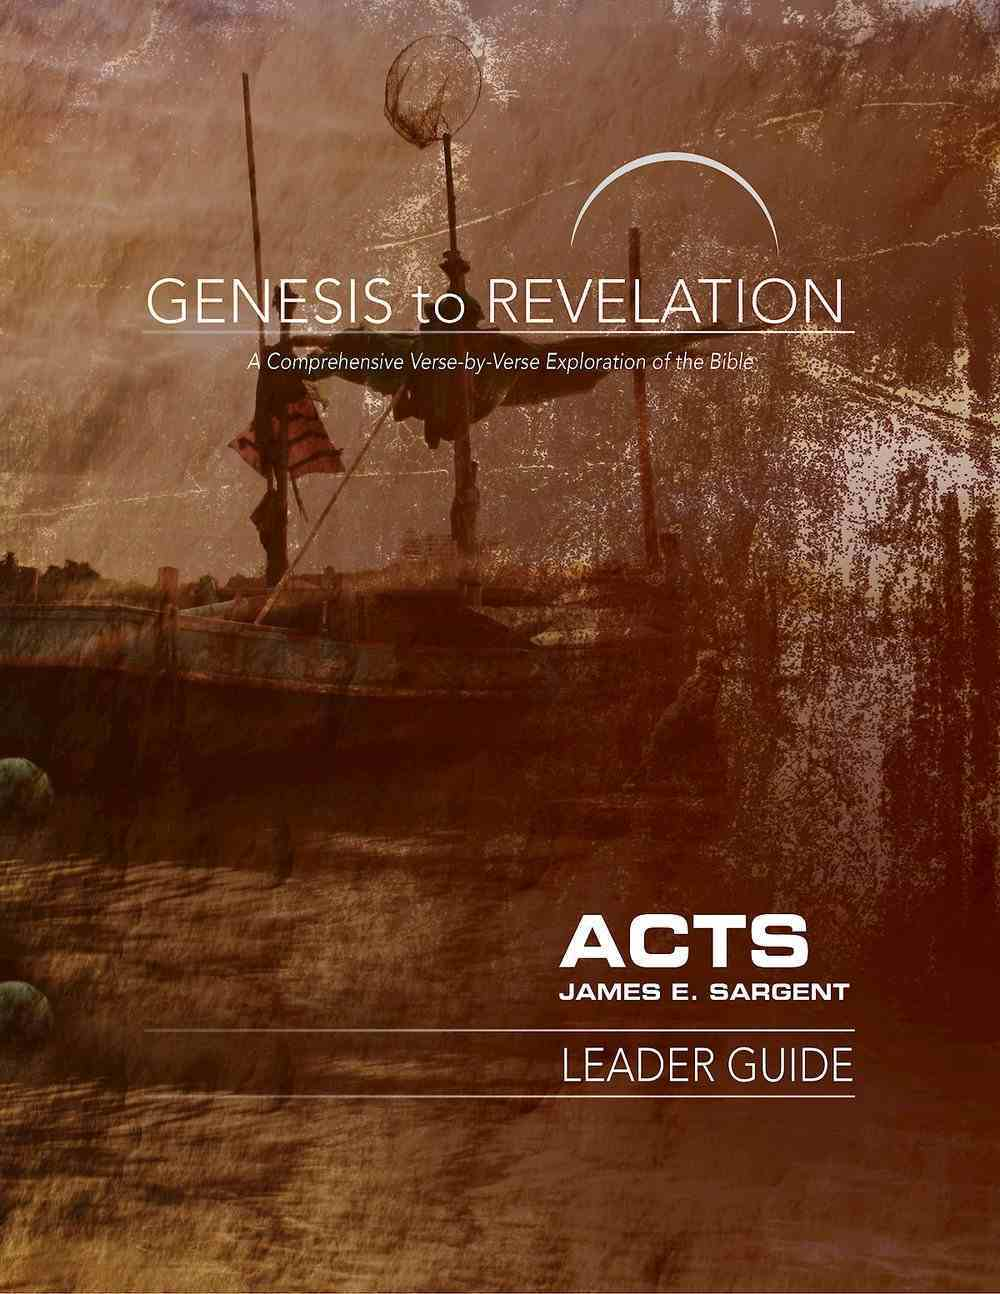 Acts : A Comprehensive Verse-By-Verse Exploration of the Bible (Leader Guide) (Genesis To Revelation Series) eBook